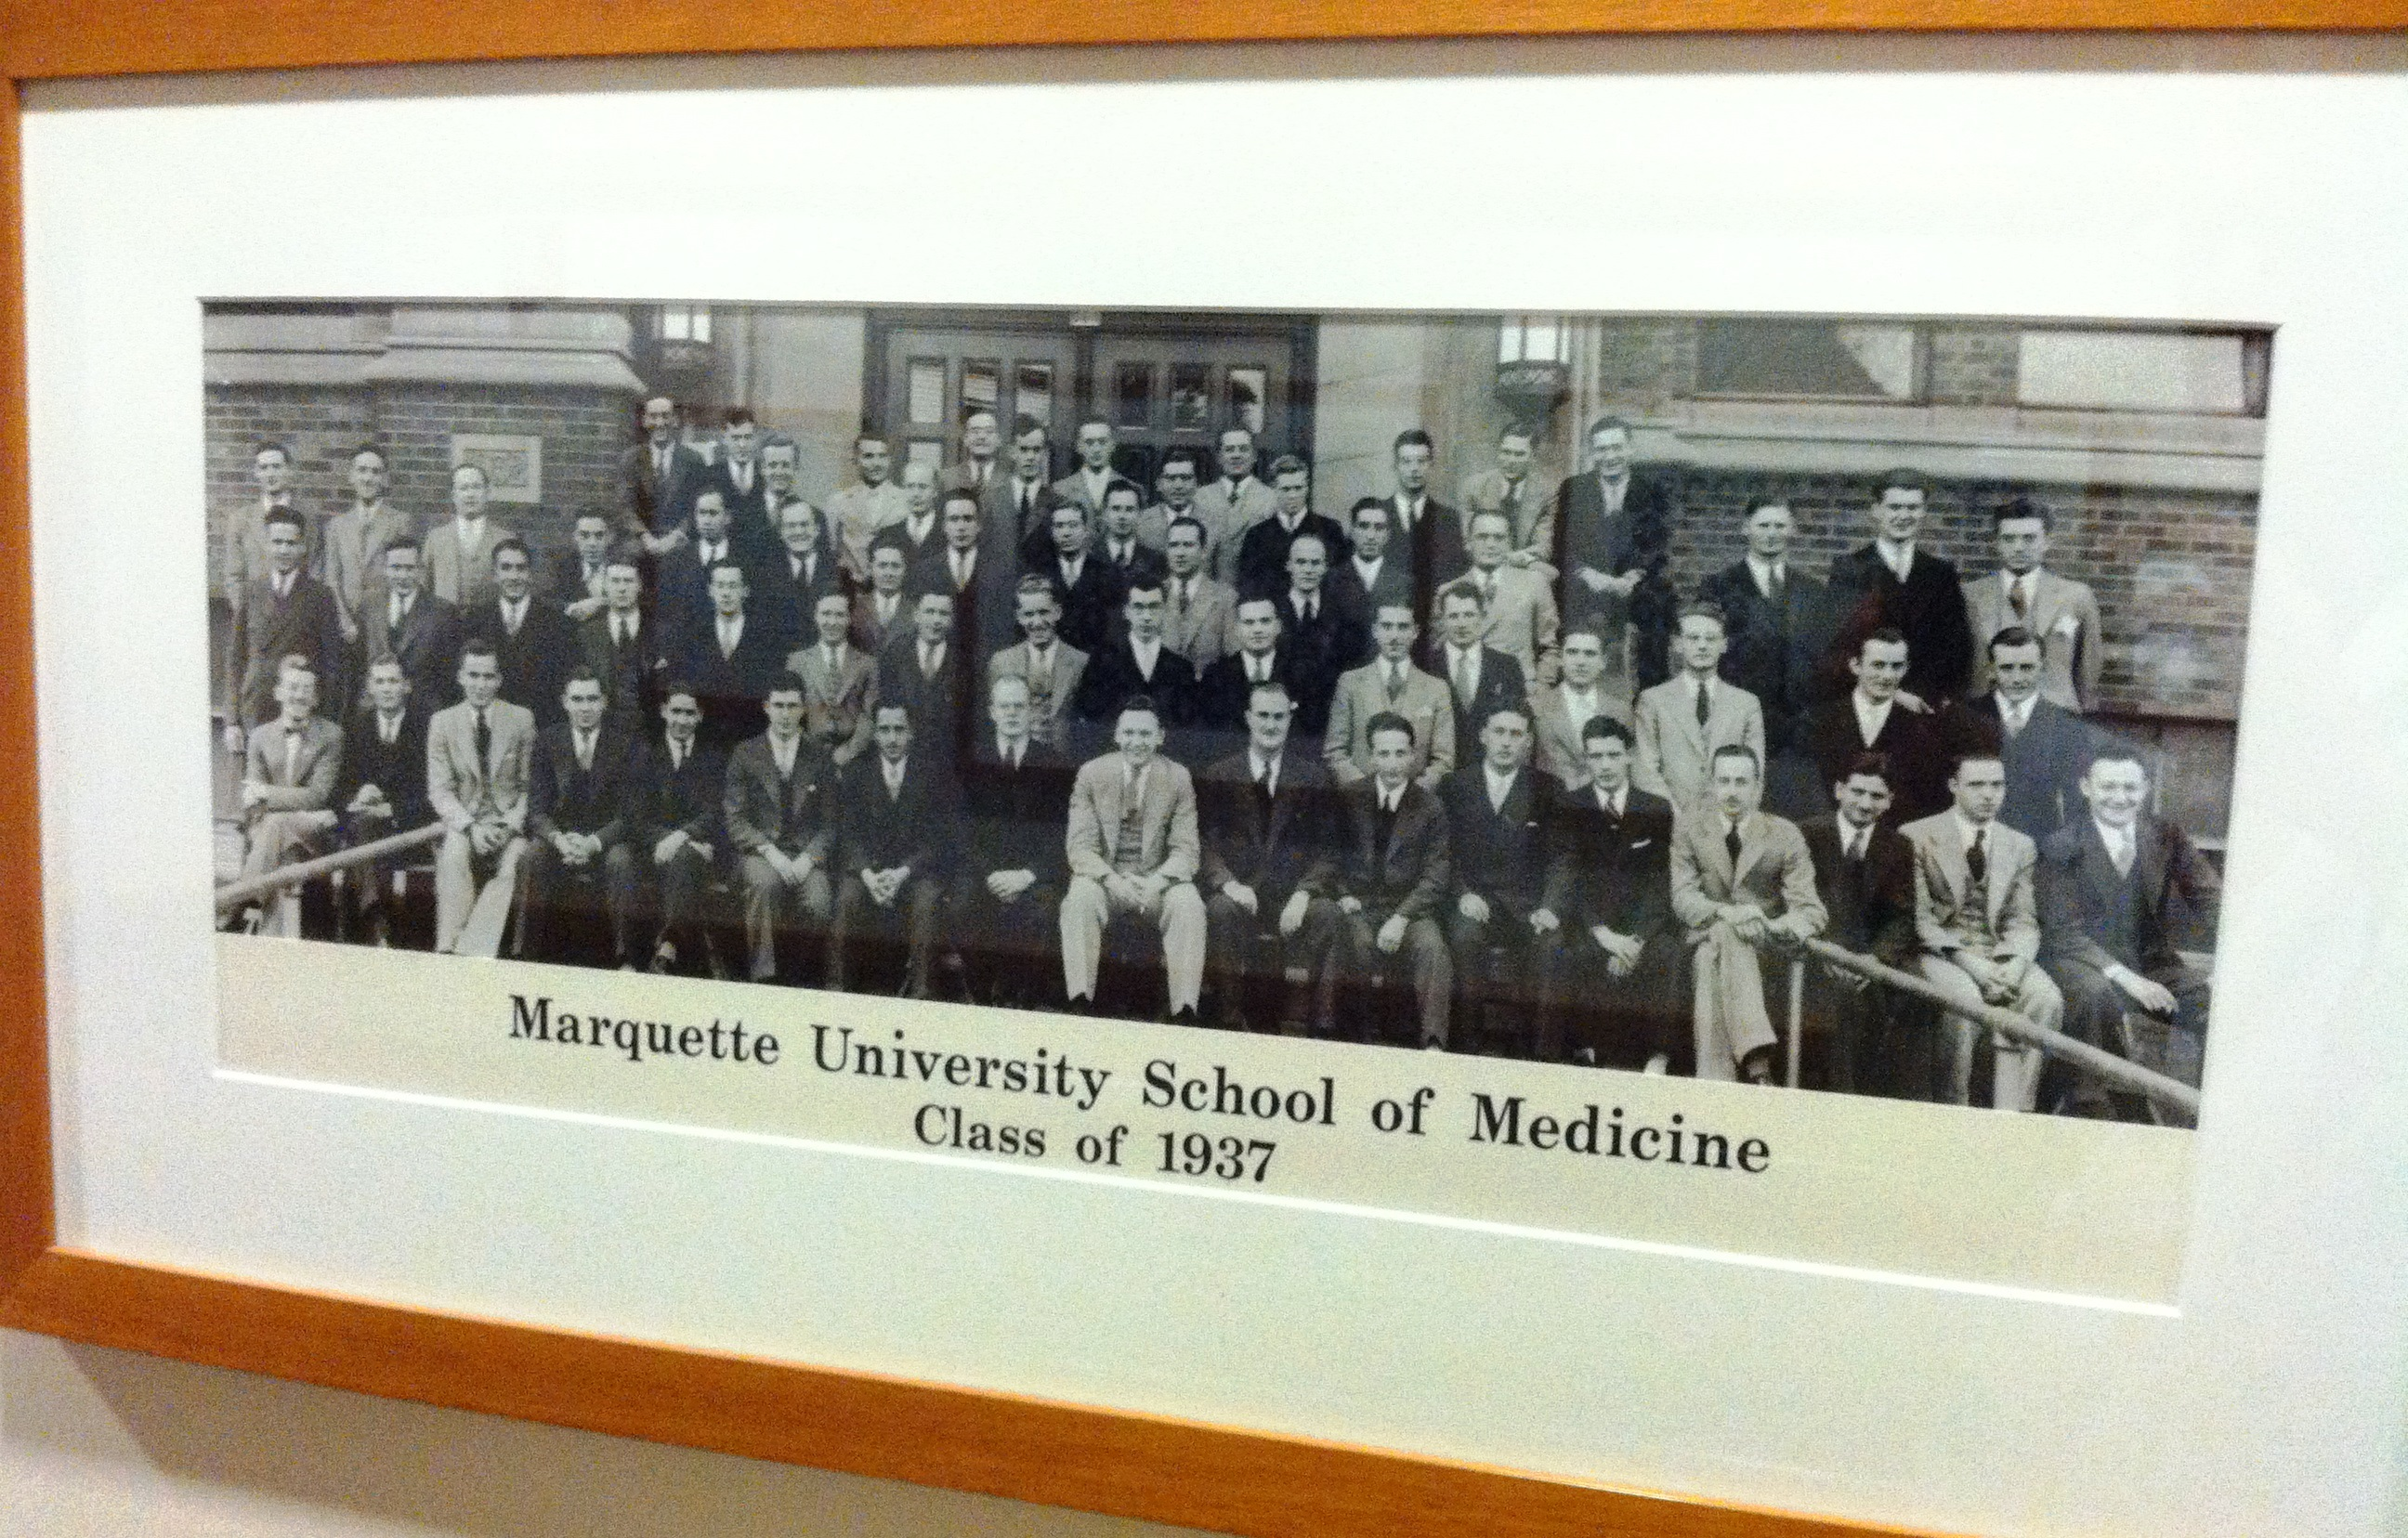 During A Thirty Year Period Before The Medical School Moved From Marquette University To Become The Medical College